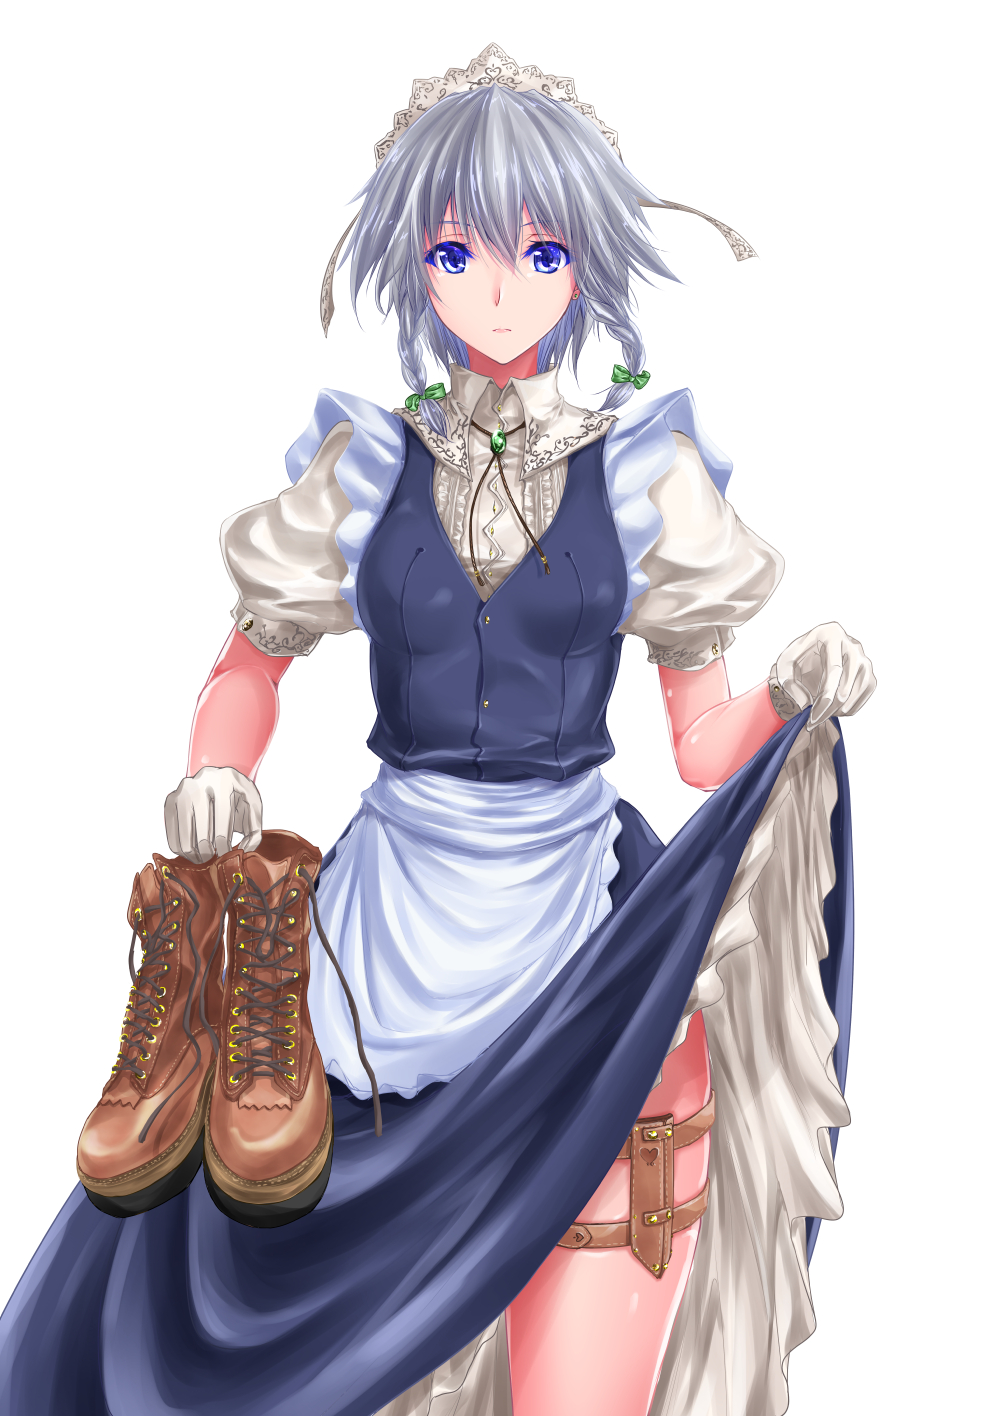 1girl apron blue_dress blue_eyes boots bow braid breasts brooch brown_footwear colored_eyelashes commentary_request cowboy_shot dress dress_lift ear_piercing eyebrows_visible_through_hair frilled_apron frills gloves green_bow hair_between_eyes hair_bow highres holding_boots holding_footwear holster izayoi_sakuya jewelry looking_at_viewer maho_(yakimorokoshi) maid maid_apron maid_headdress medium_breasts petticoat piercing pink_lips puffy_short_sleeves puffy_sleeves short_hair short_sleeves silver_hair simple_background solo standing thigh_holster touhou twin_braids white_apron white_background white_gloves wing_collar